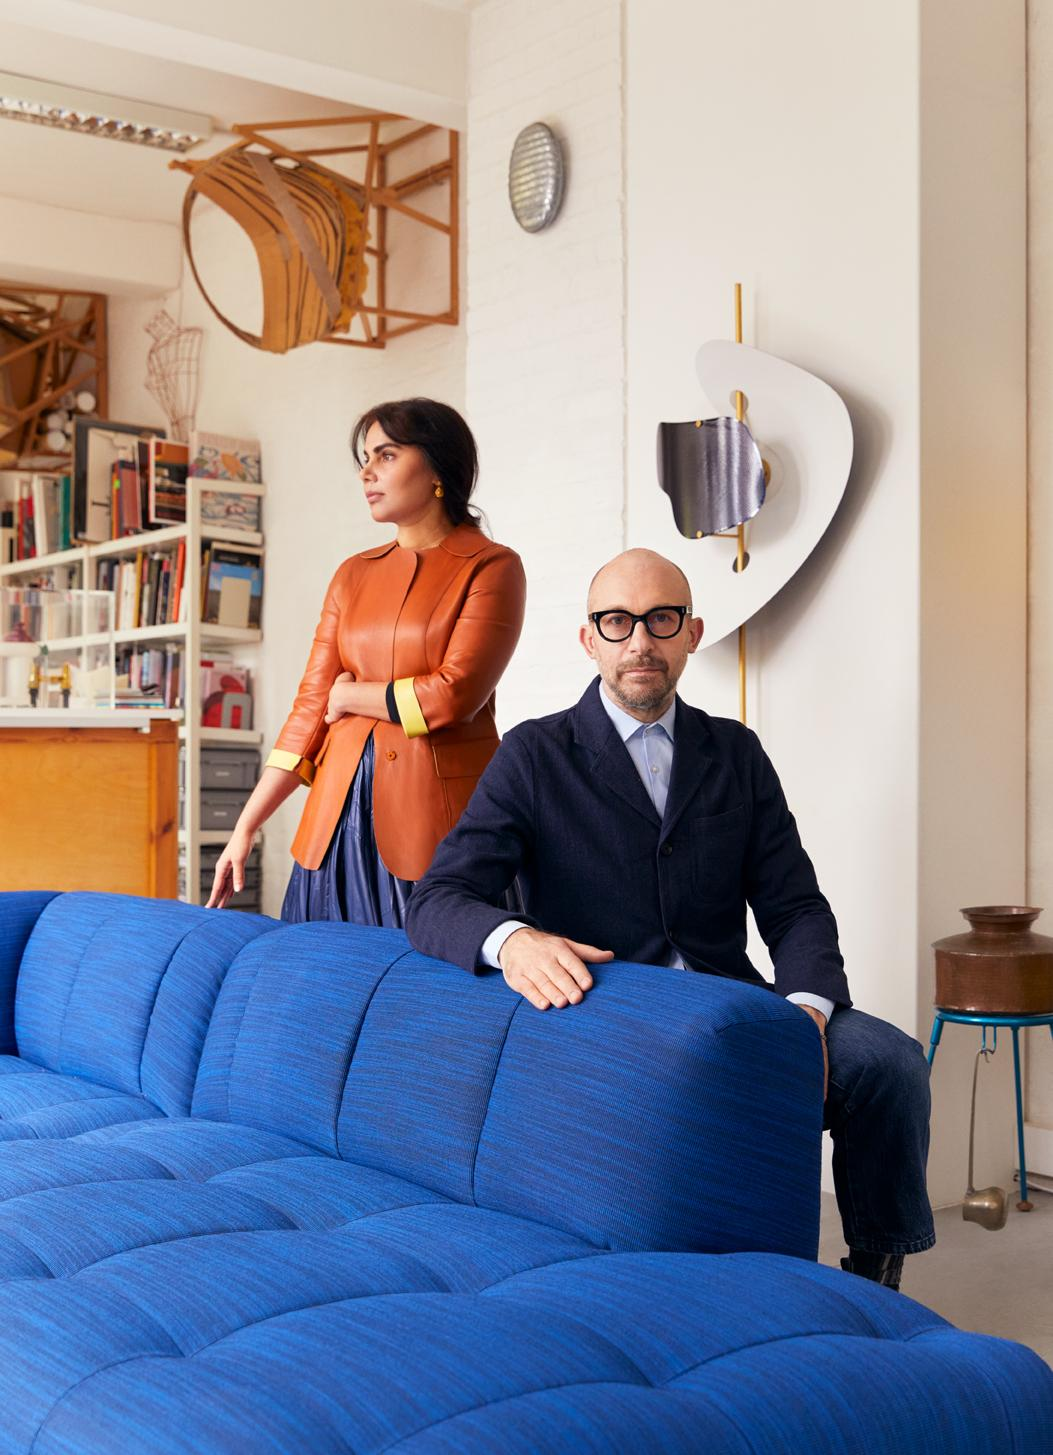 Designers Nipa Doshi and Jonathan Levien posing in their London Studio, next to a bright blue version of their Quilton Sofa for Hay